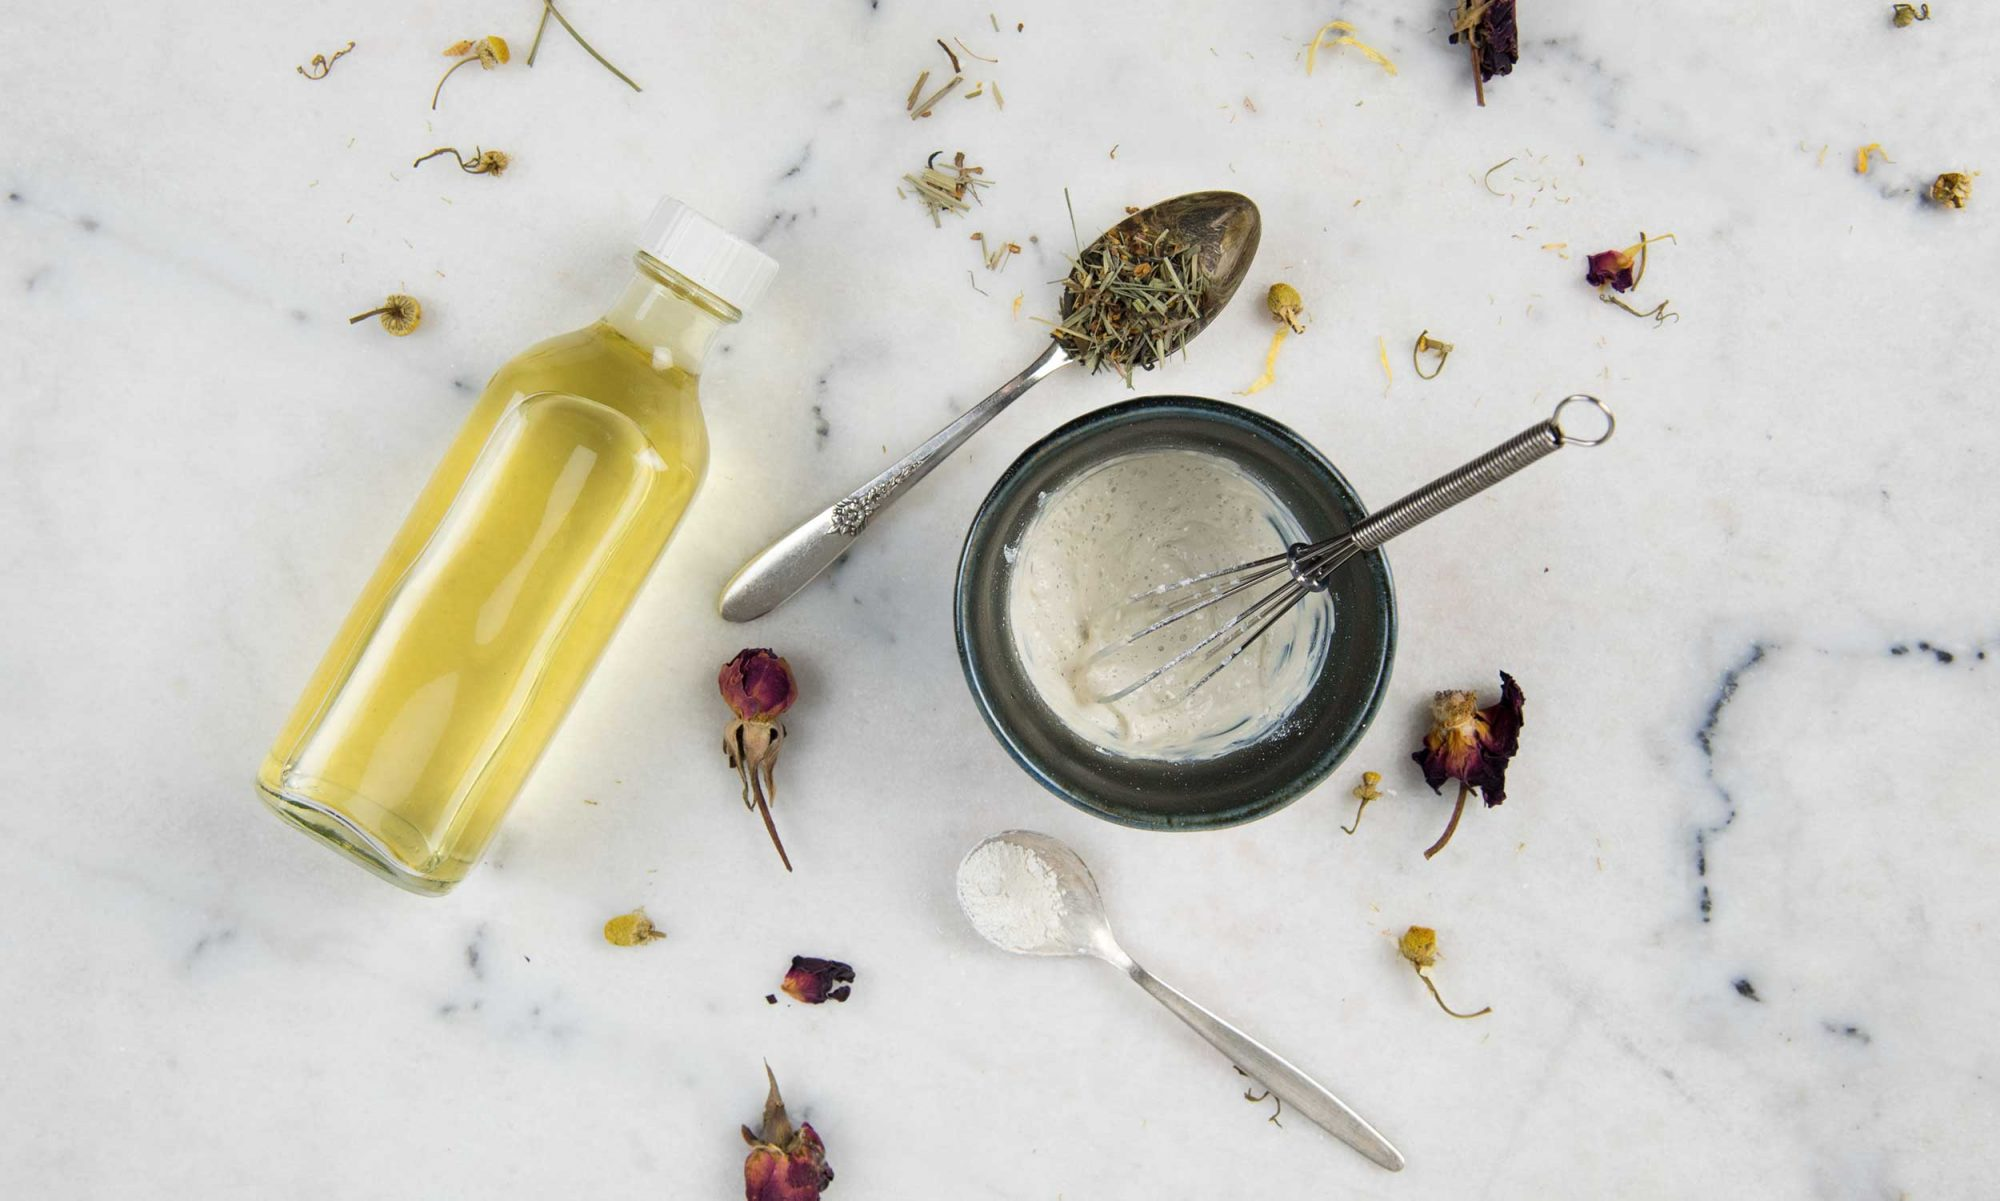 This DIY Green Tea Face Mask and Toner Will Make Your Skin Glow